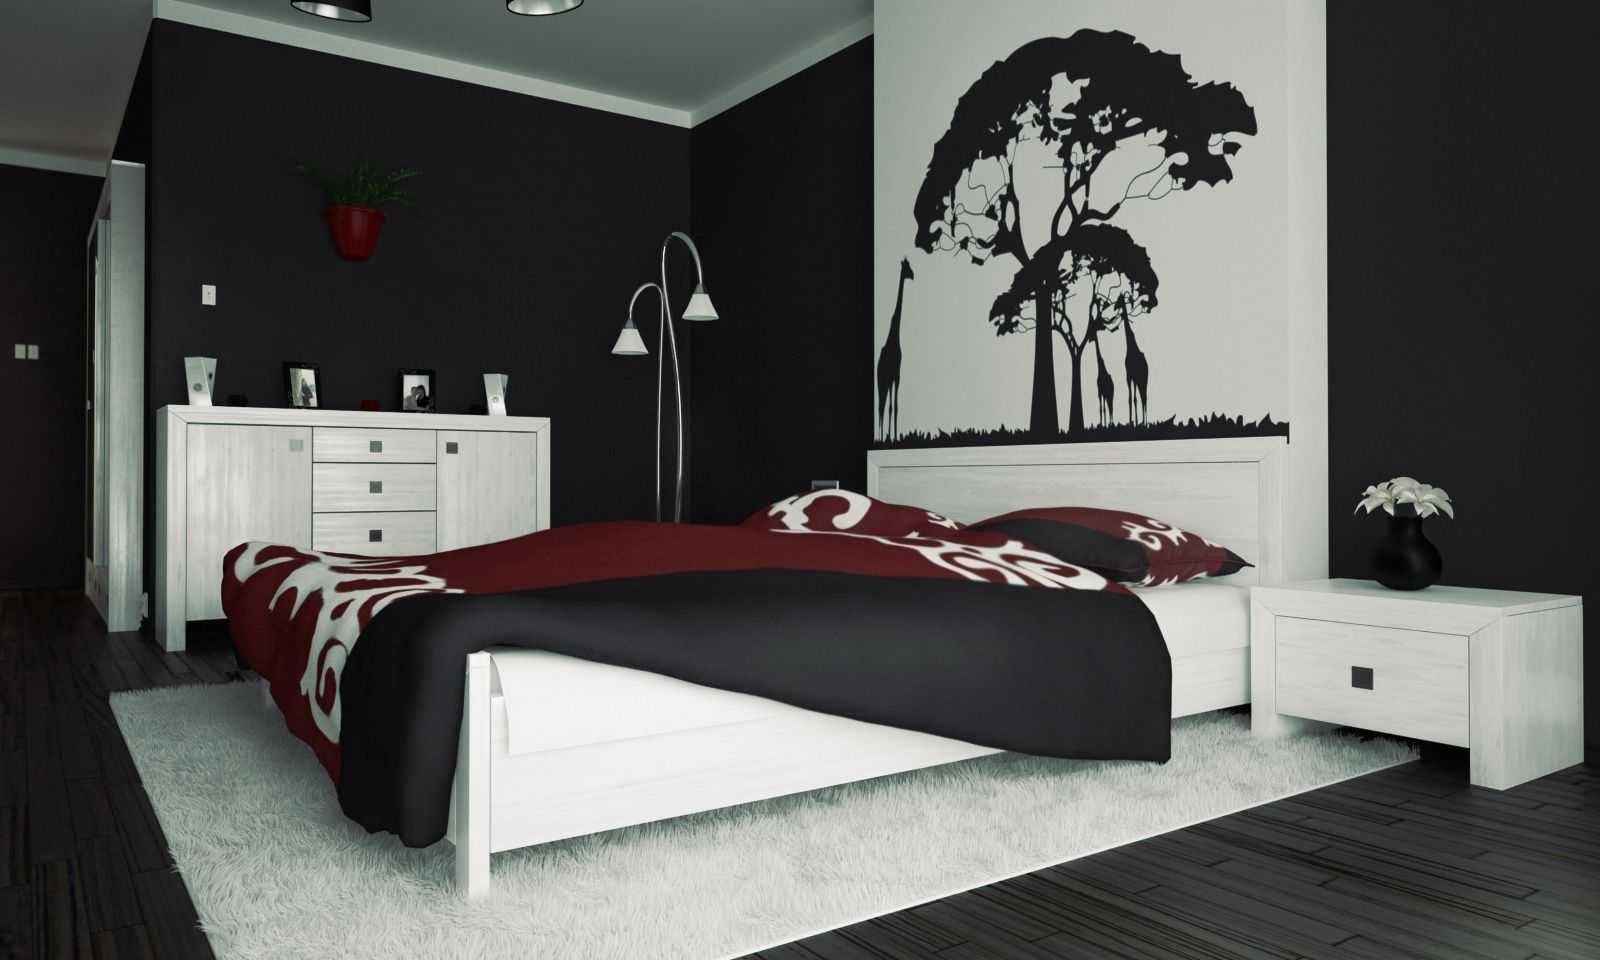 10 Lovely Red And Black Bedroom Ideas red black white grey bedroom ideas also beautiful green flag air 2020